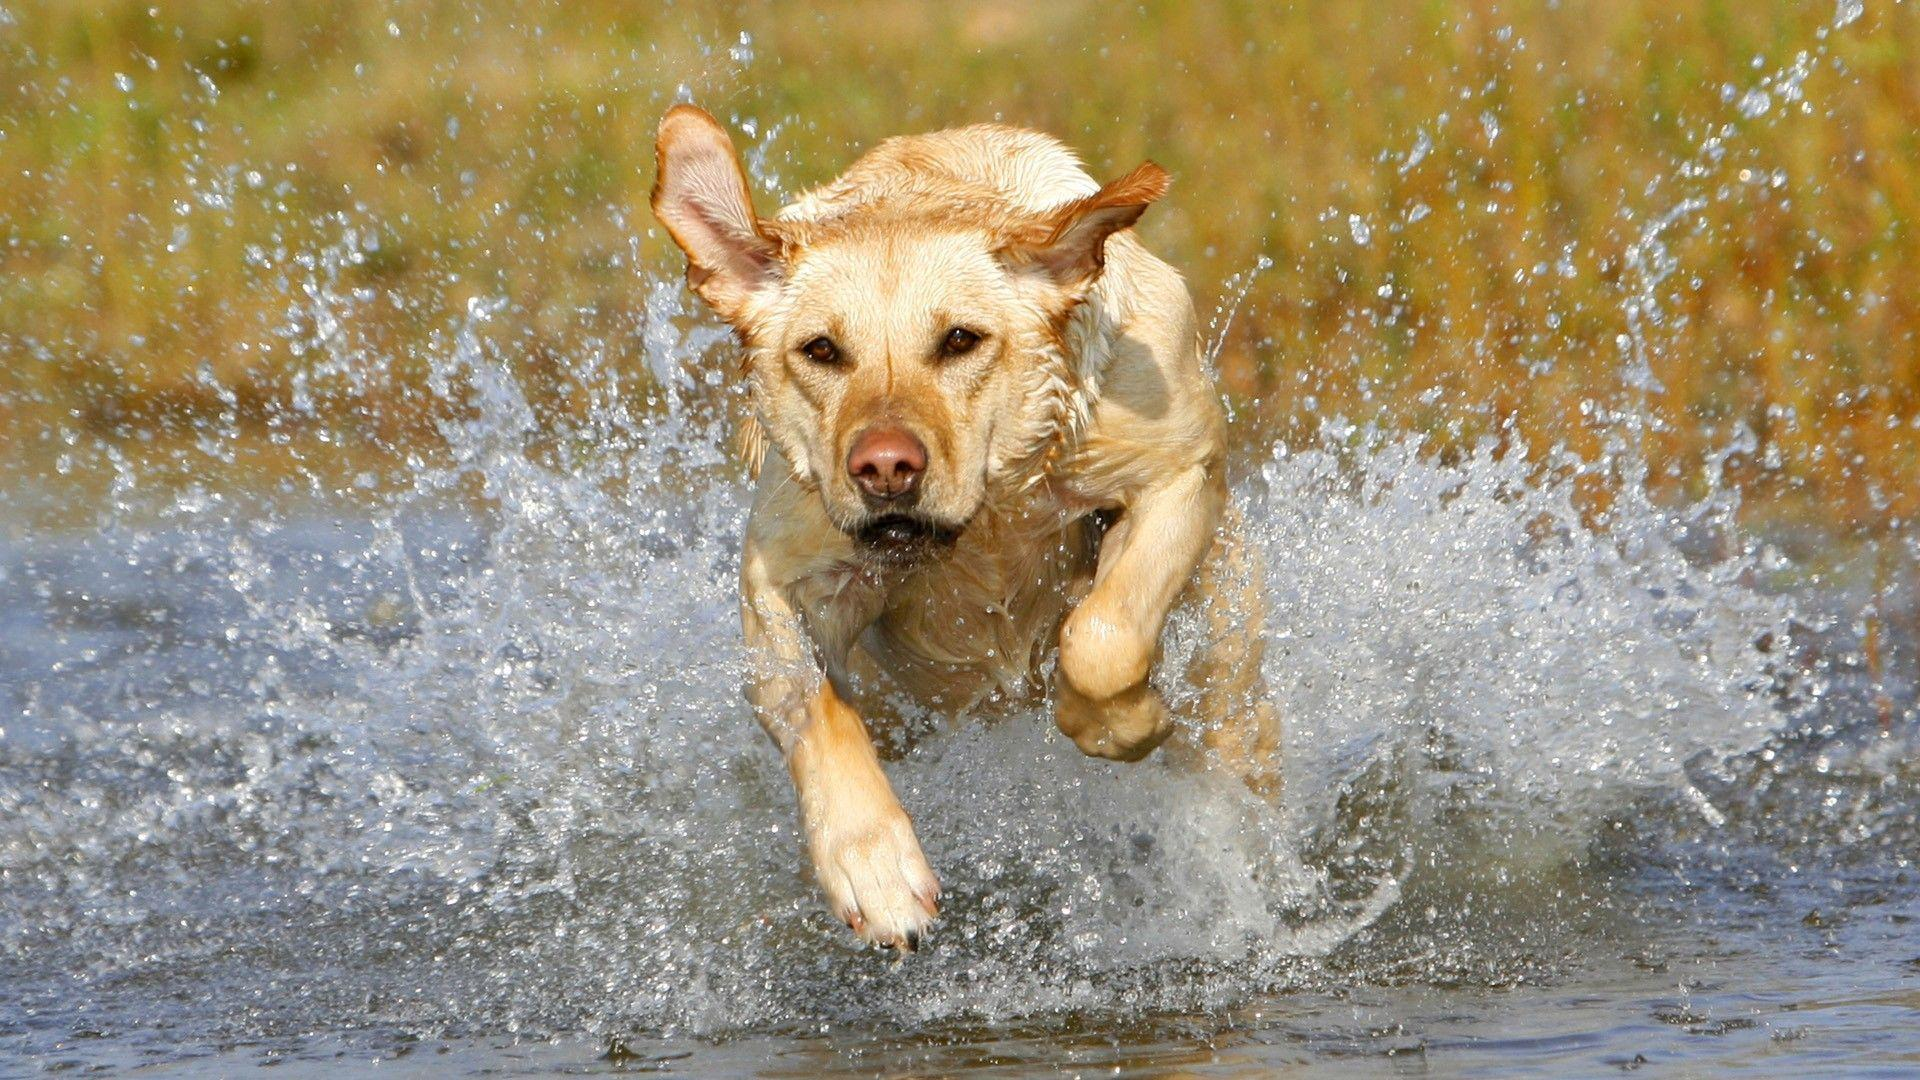 Download Golden Labrador Wallpaper 1920x1080 | Wallpoper #313754